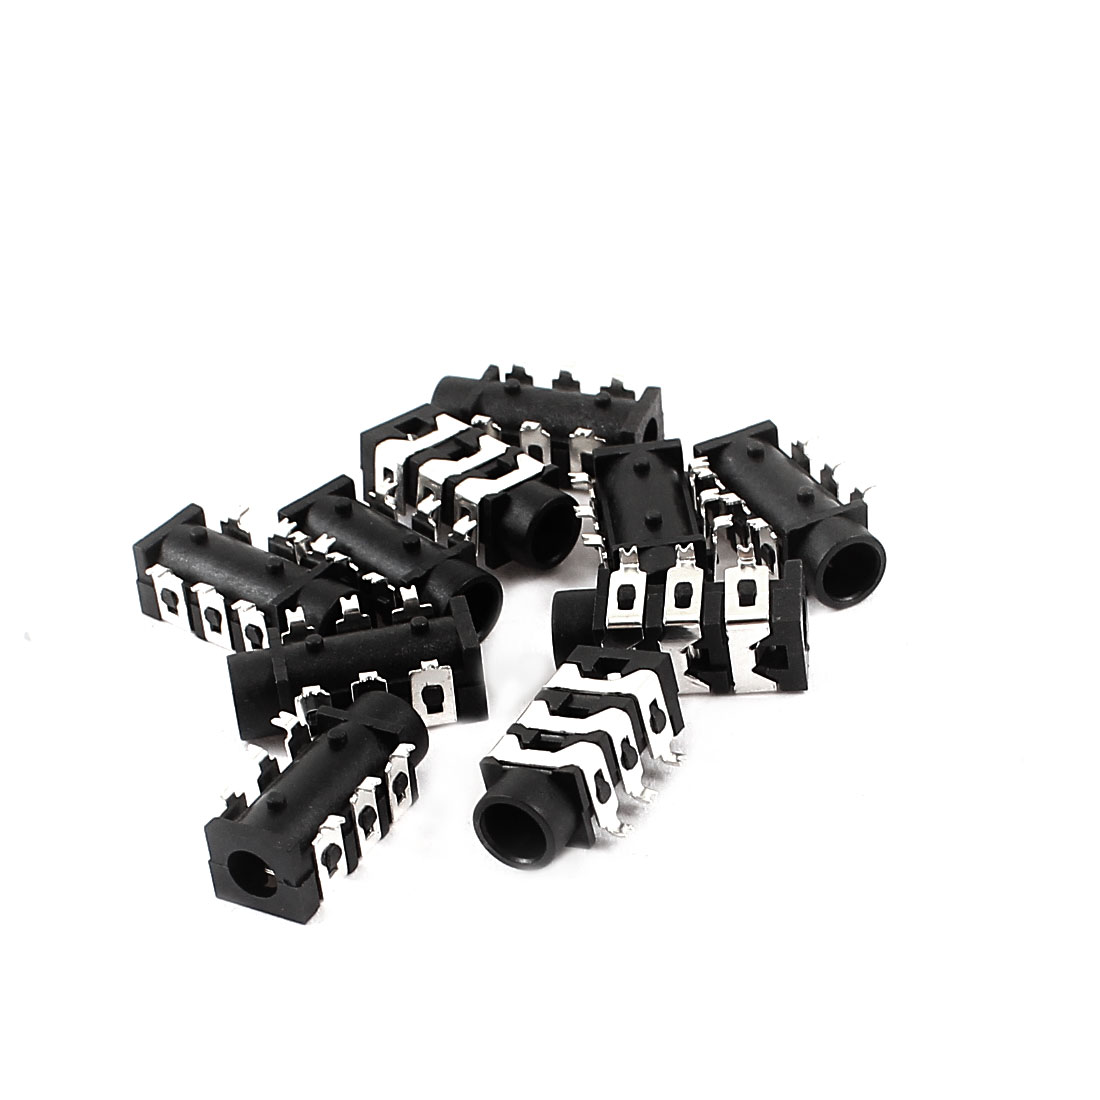 10 Pcs 3.5mm 6 Pins SMT PCB Panel Mounting Headphone Jack Socket Black